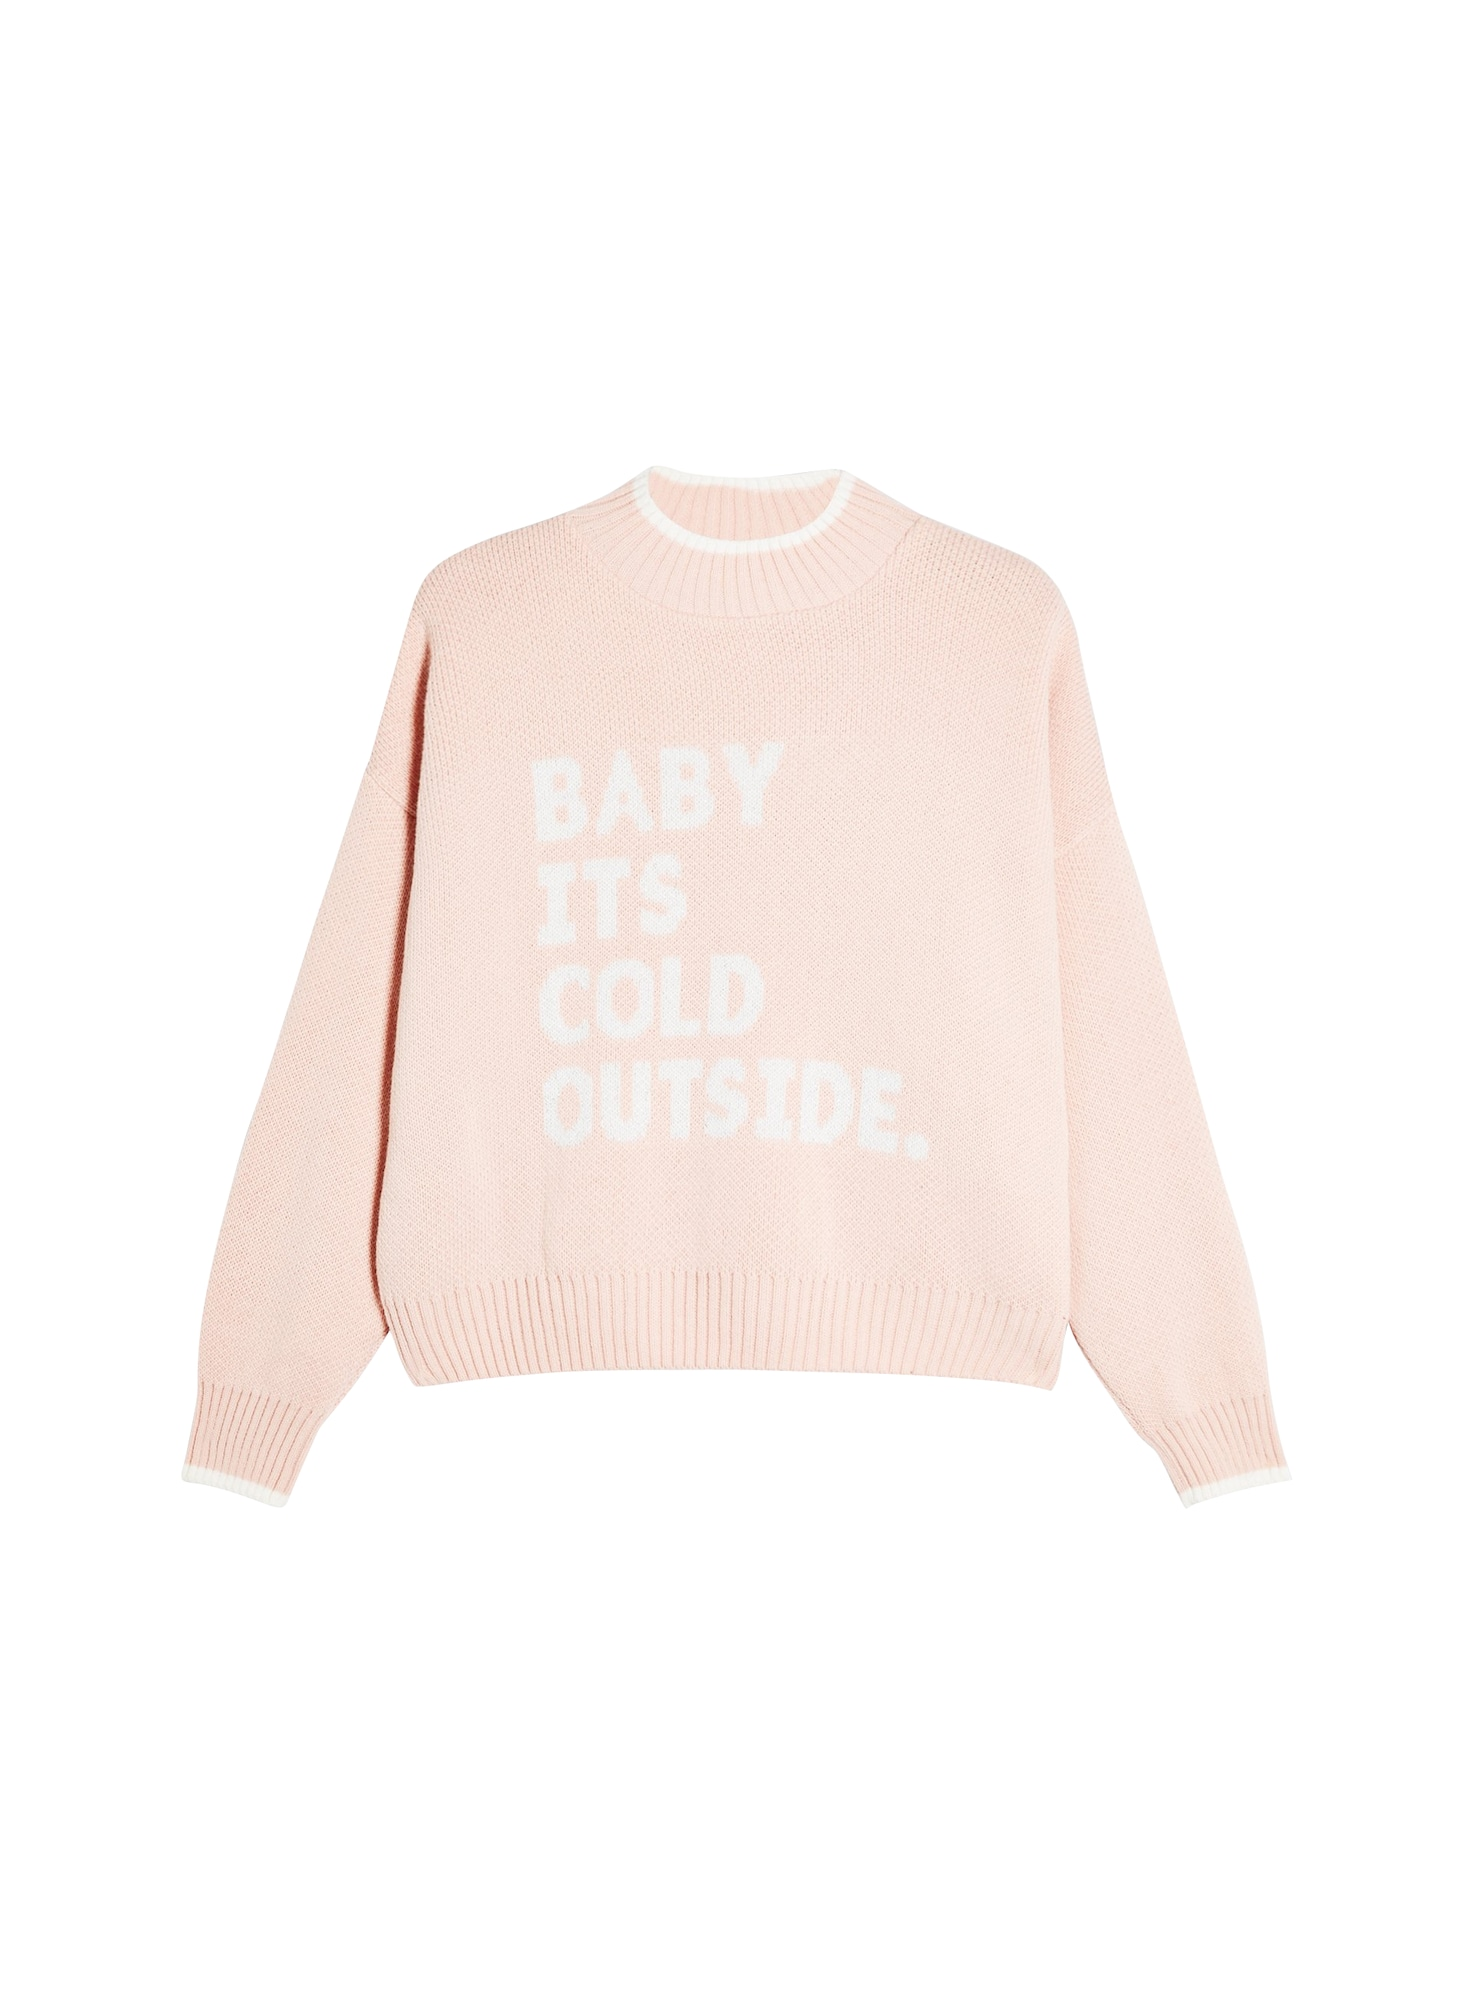 Miss Selfridge Pulover 'Baby its cold outside'  roz / alb